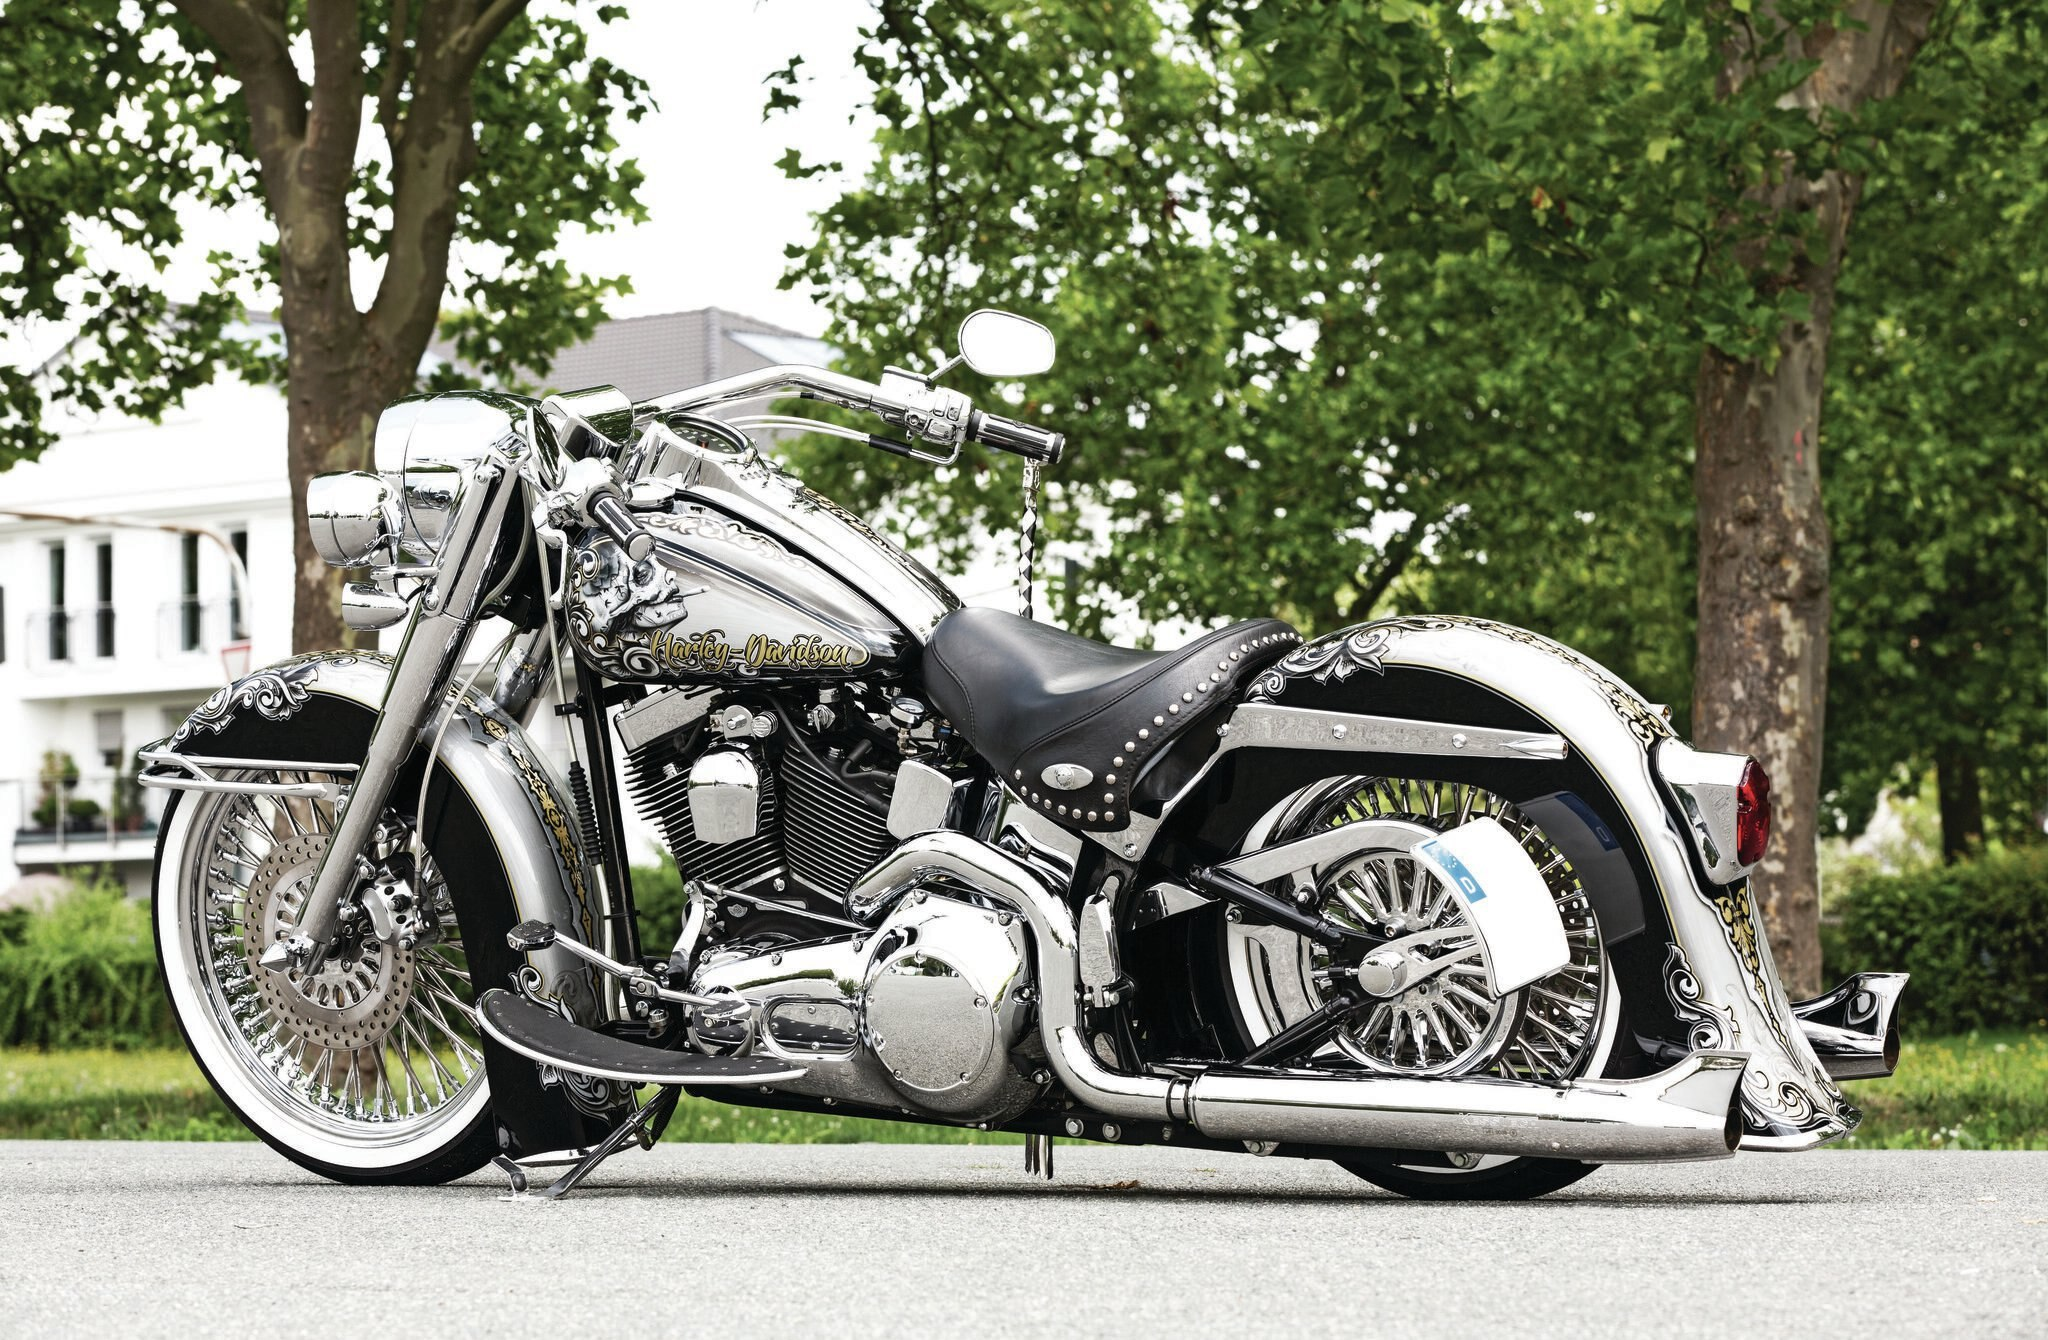 2003 harley davidson softail heritage classic anniversary side view 041?resize\\\\\\\=665%2C435 2006 harley softail wiring diagram gandul 45 77 79 119 2006 harley davidson wiring diagrams at crackthecode.co